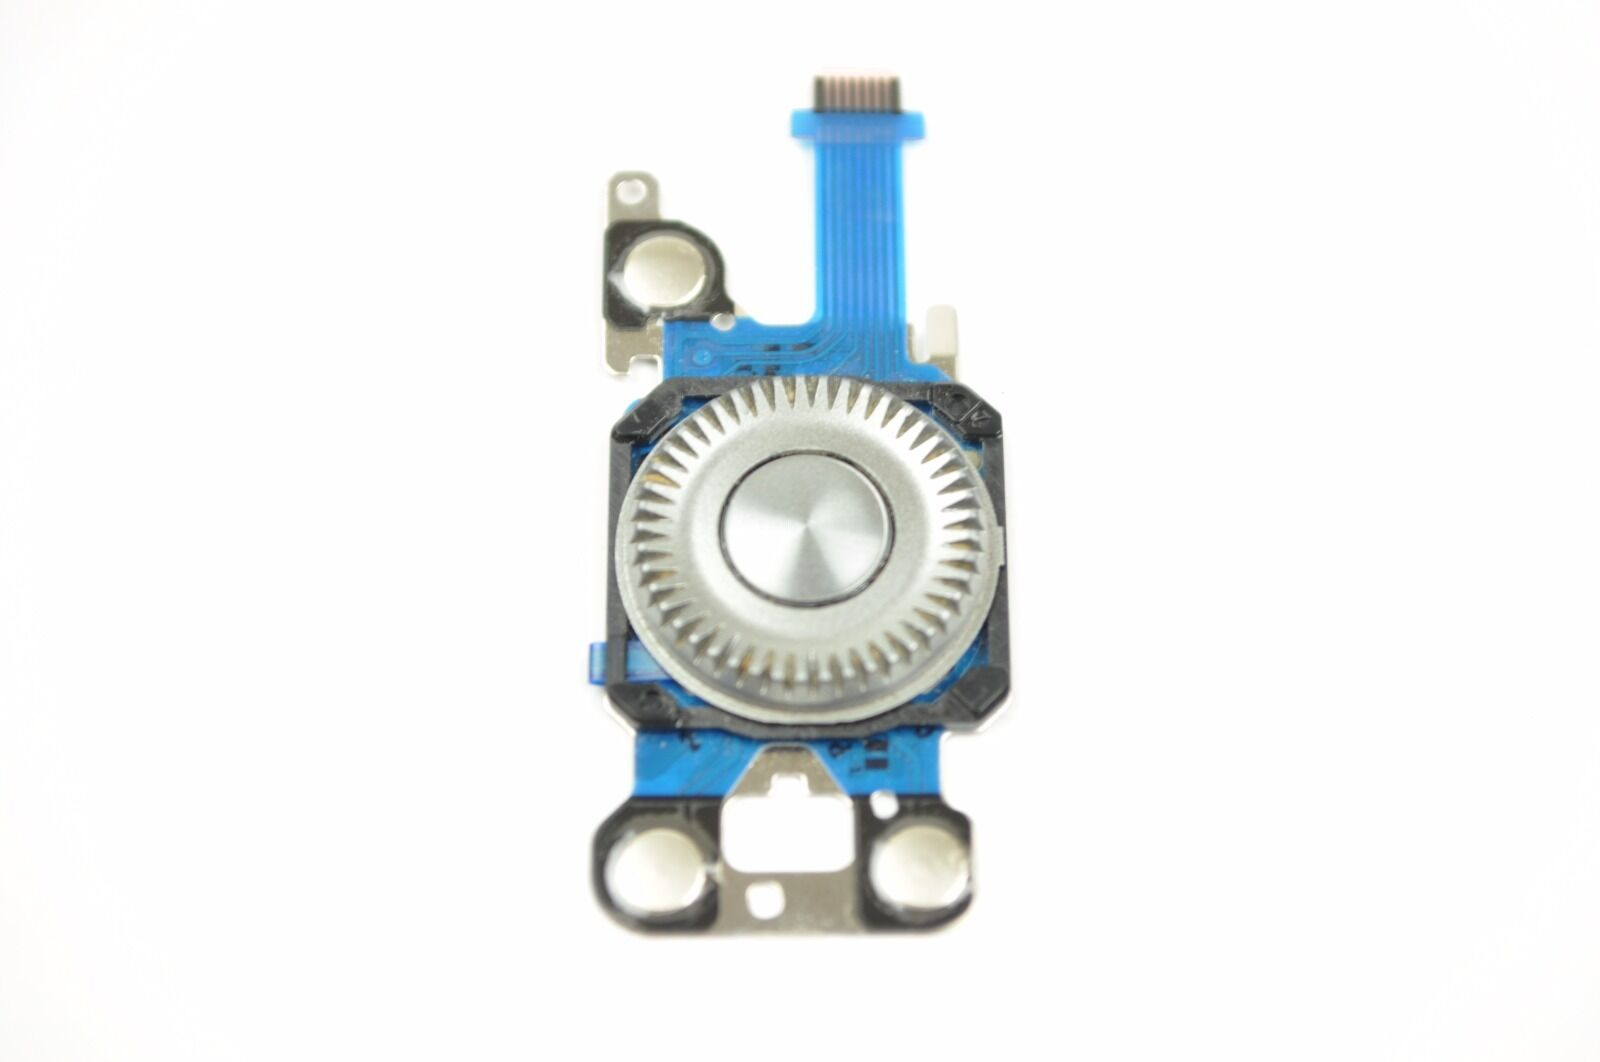 Repair Parts For Sony A5000 User Interface Button Panel W...